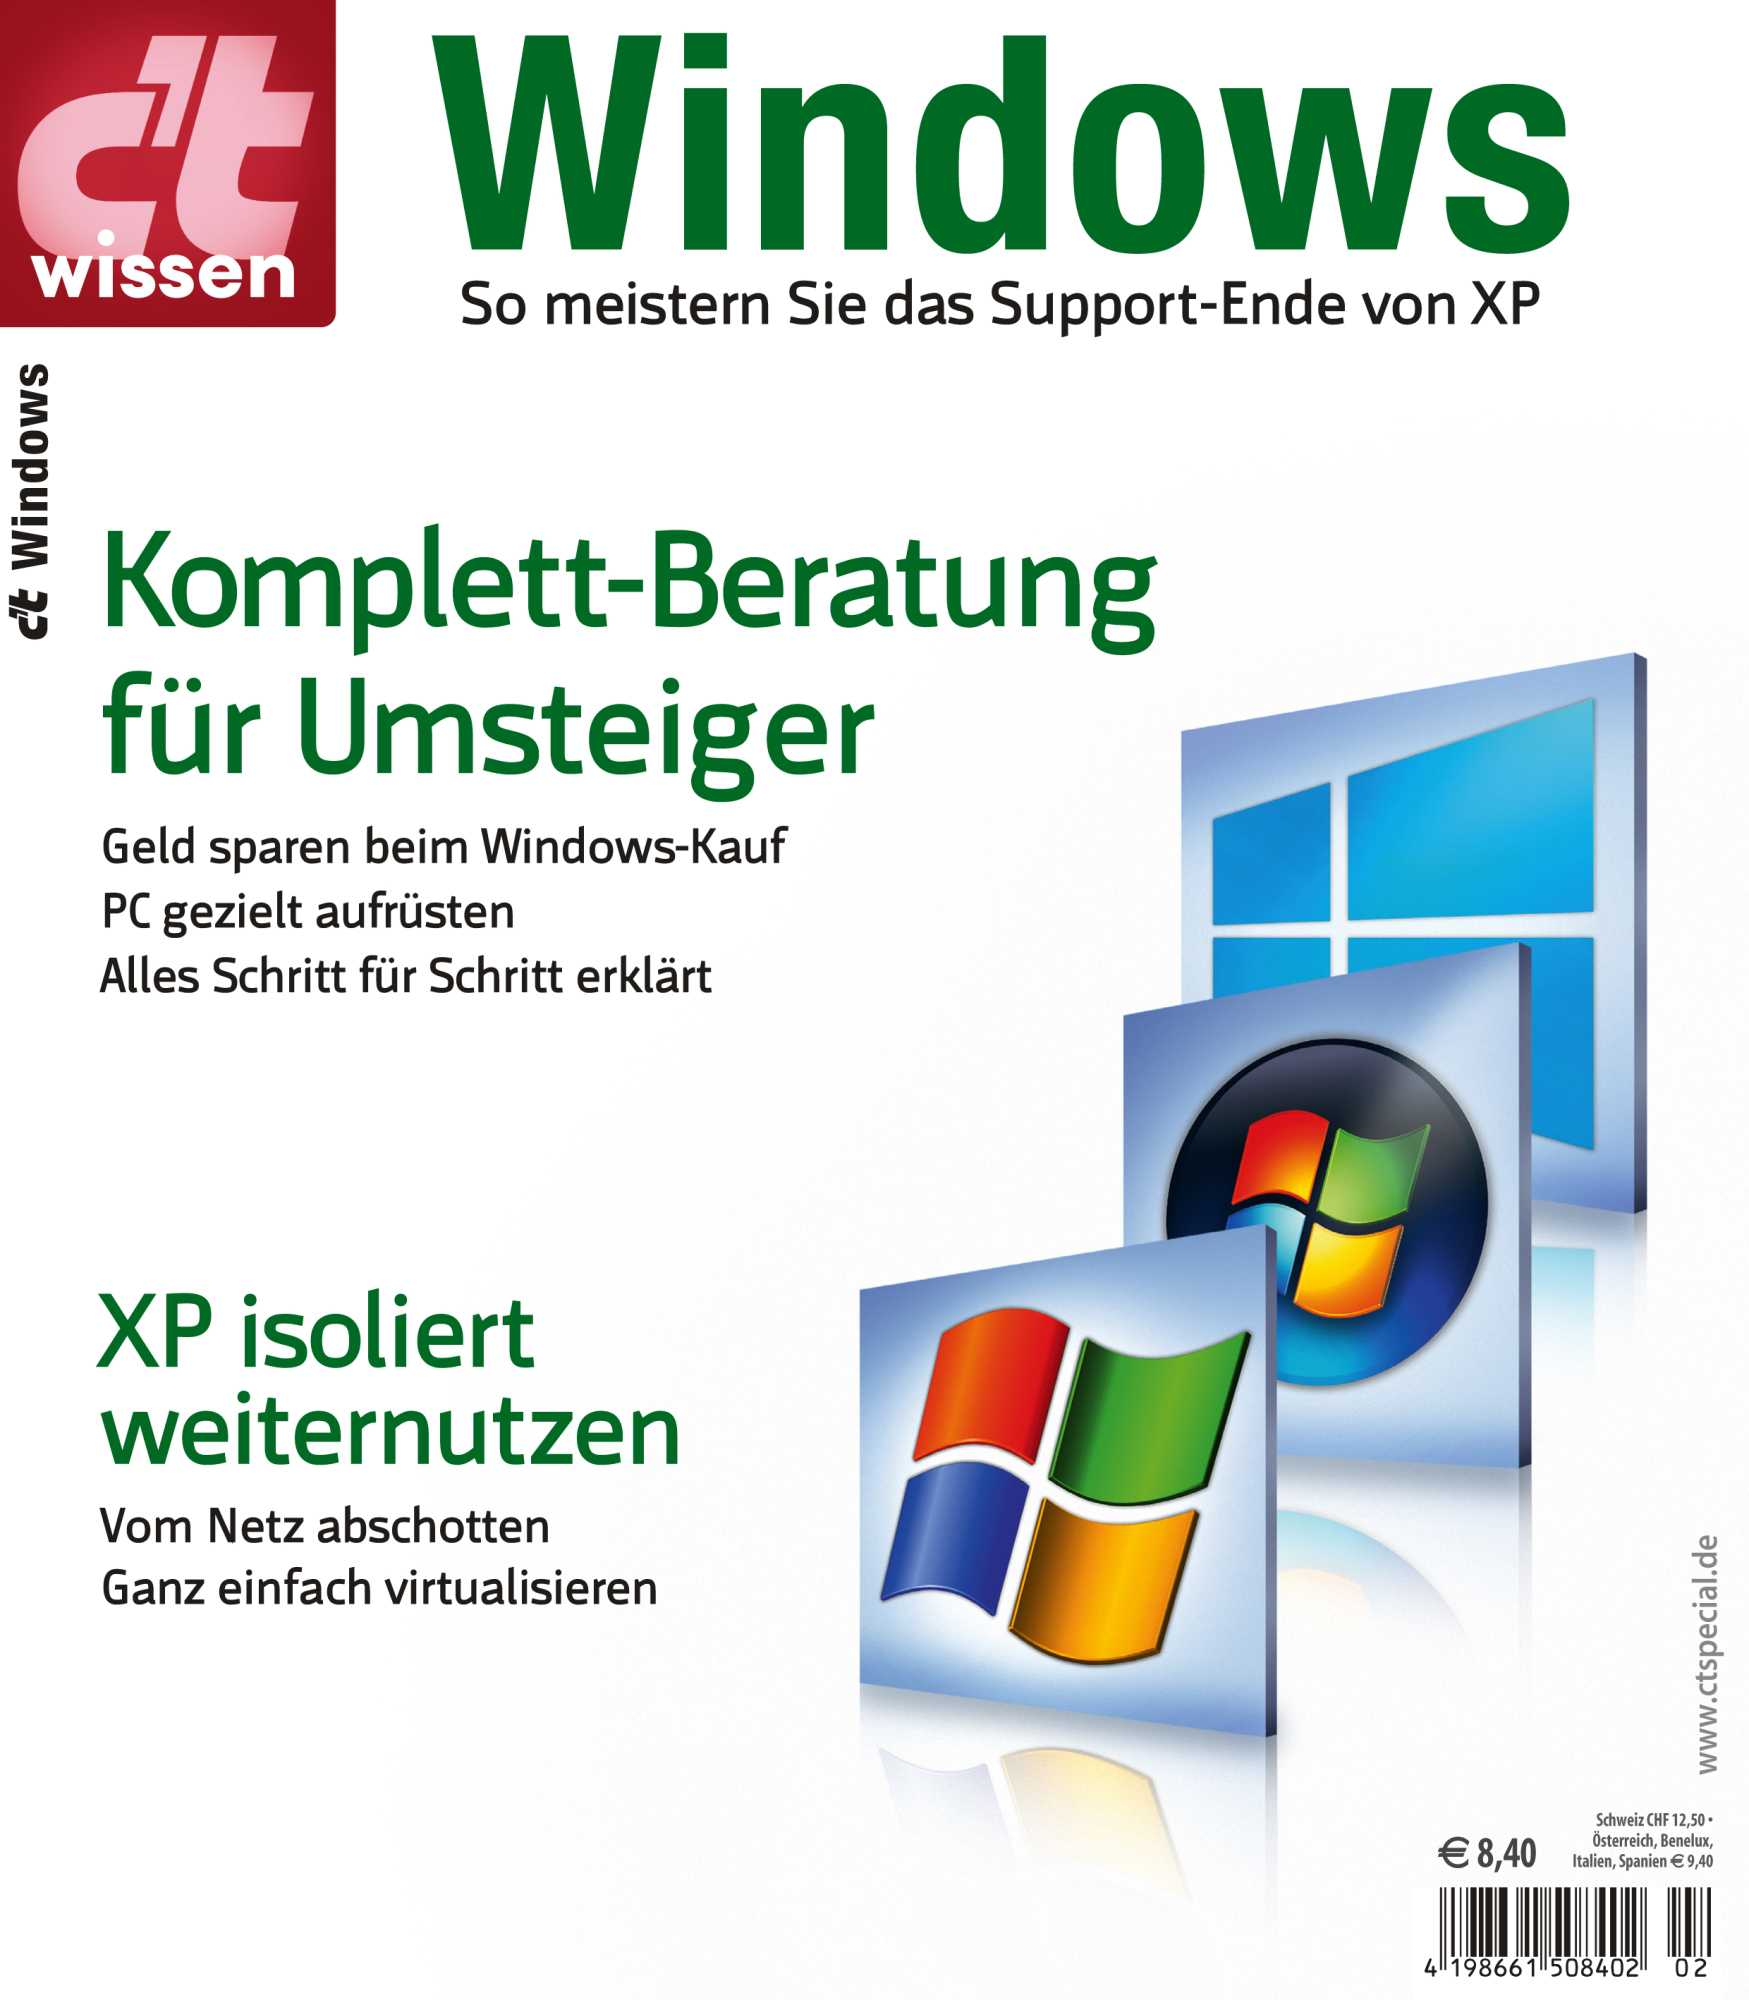 """c't wissen Windows"": So meistern Sie das Support-Ende von Windows XP"